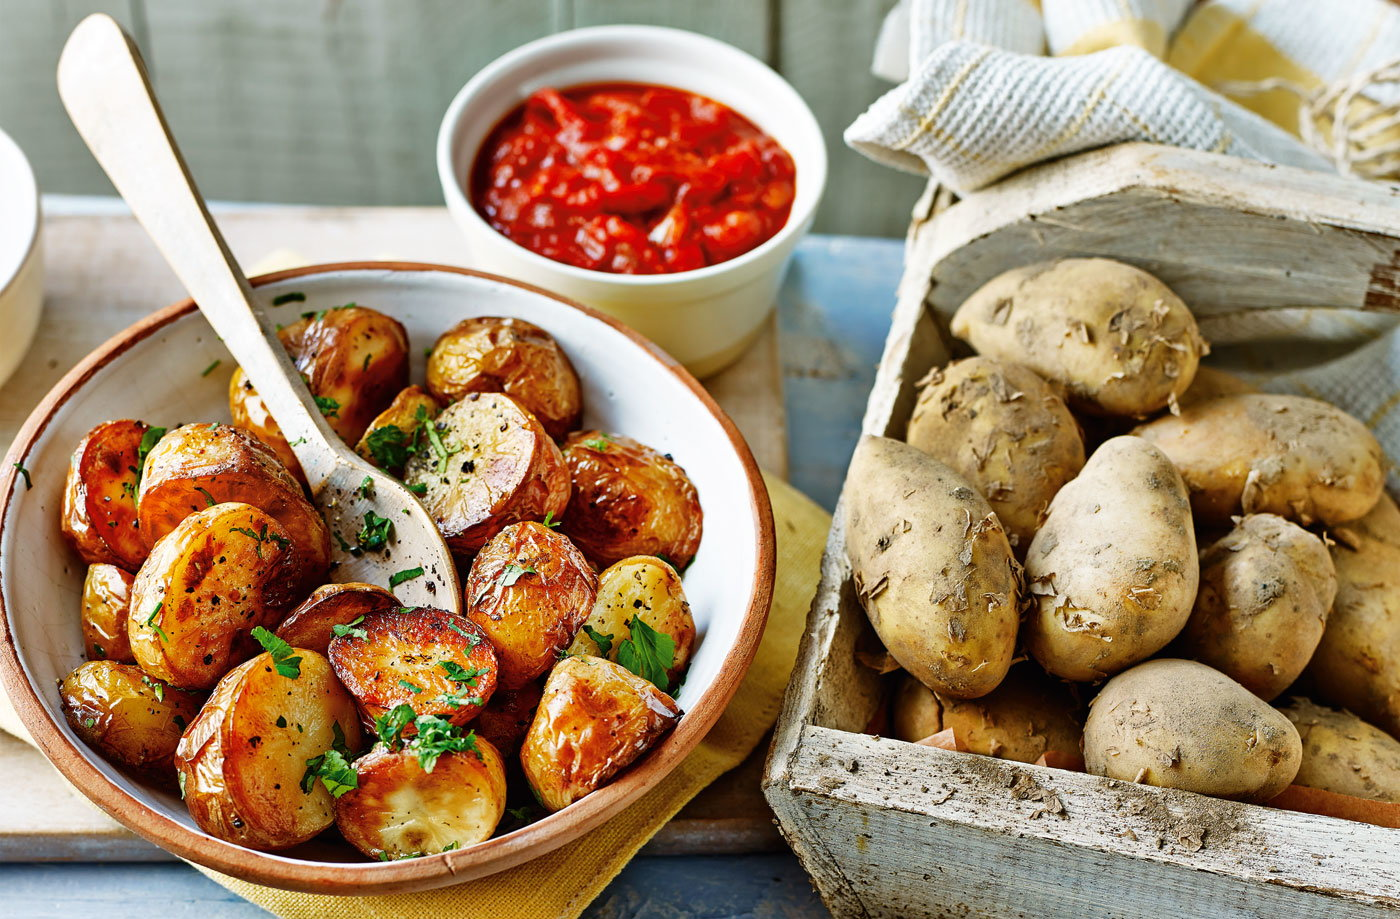 Jersey Royal patatas bravas recipe